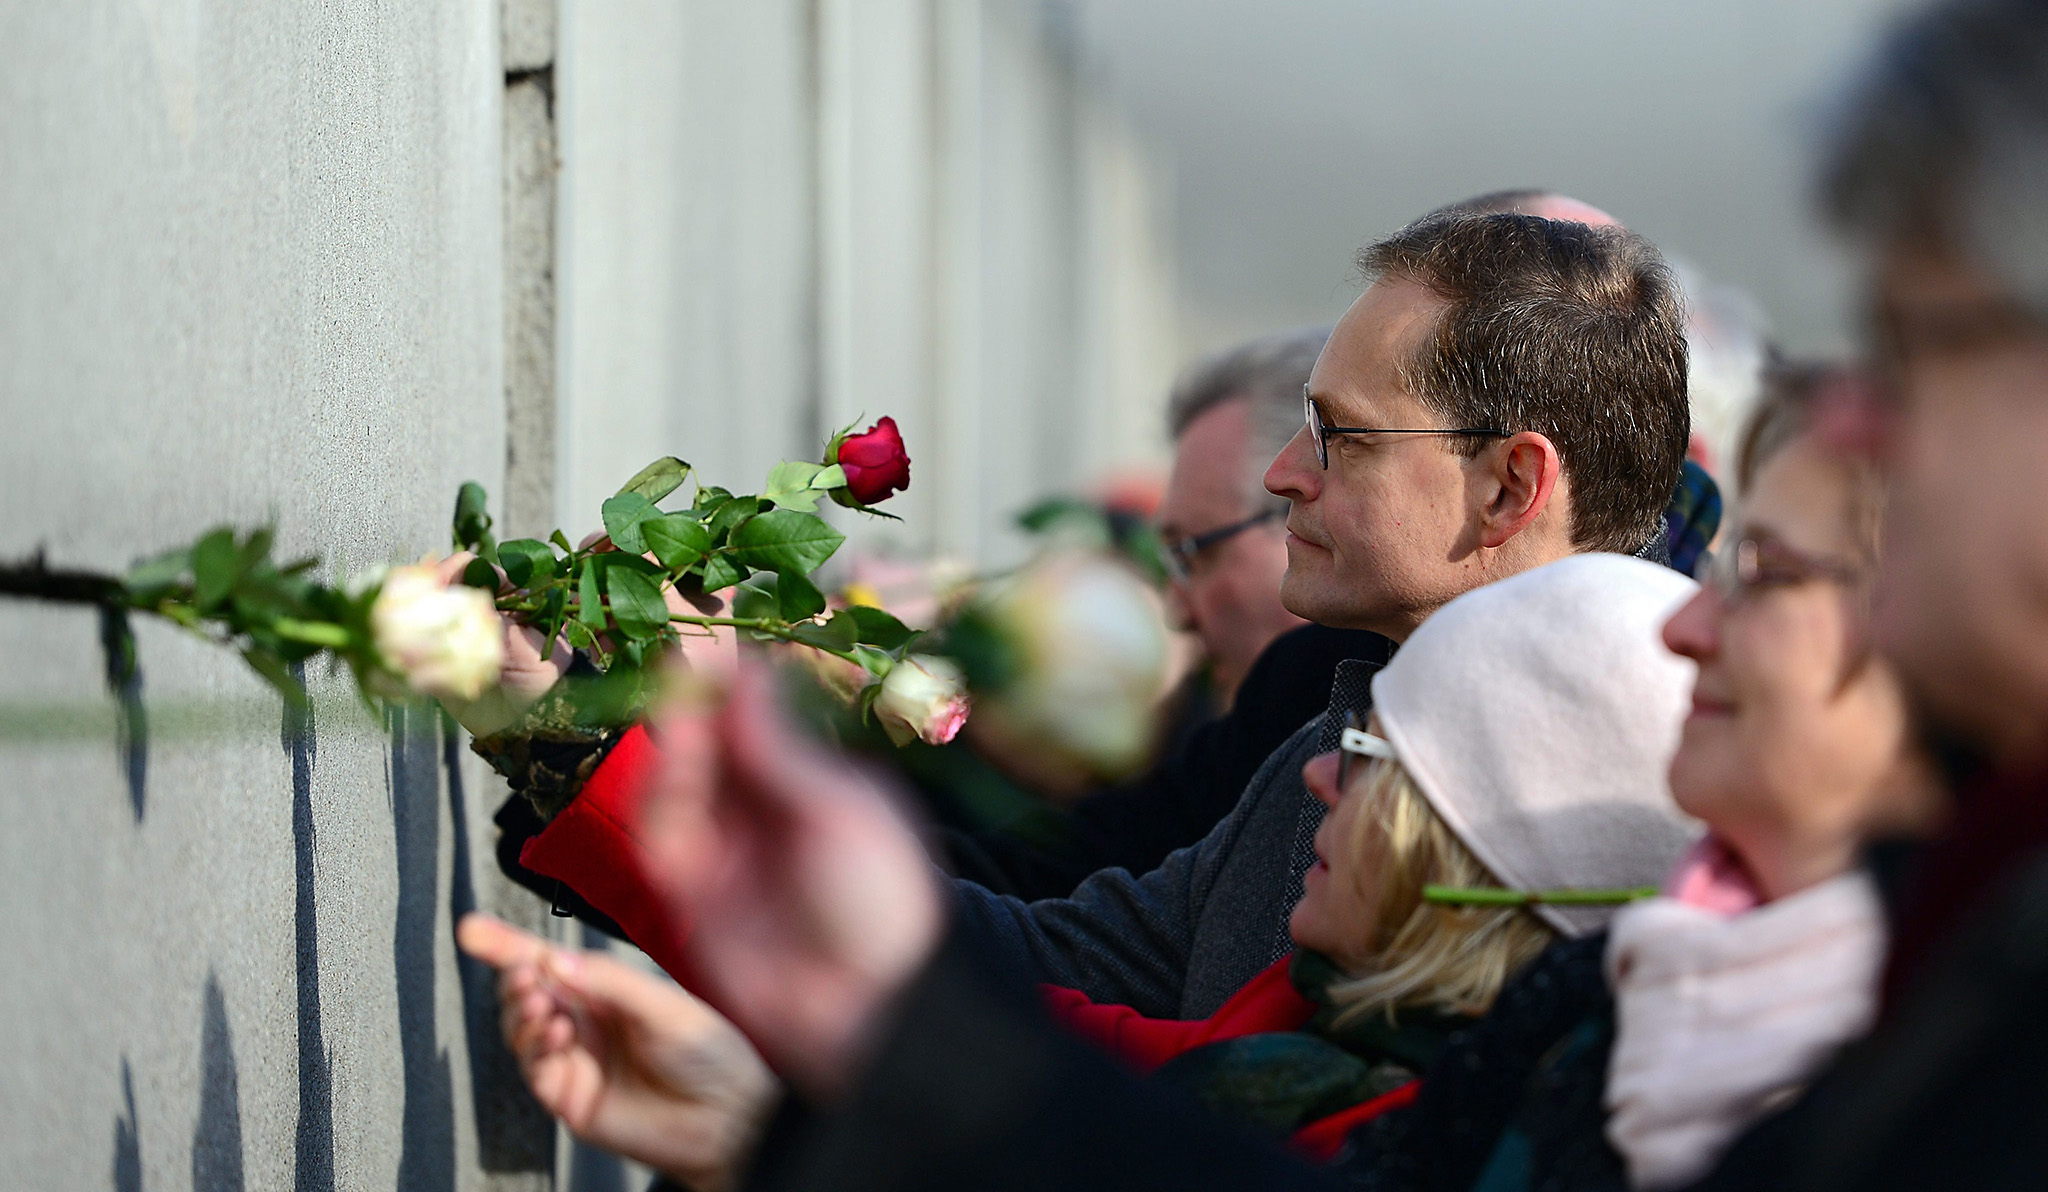 Berlin Mayor Michael Mueller places a rose in a crack during the central event to commemorate the 1989 Peaceful Revolution in the GDR at the Berlin Wall memorial site in Berlin, Germany, 09 November 2016. 09 November marks a significant date in German history when both the Fall of the Wall as well as the Kristallnacht (Cyrstal Night, or Night of Broken Glass) are commemorated.  EPA/MAURIZIO GAMBARINI